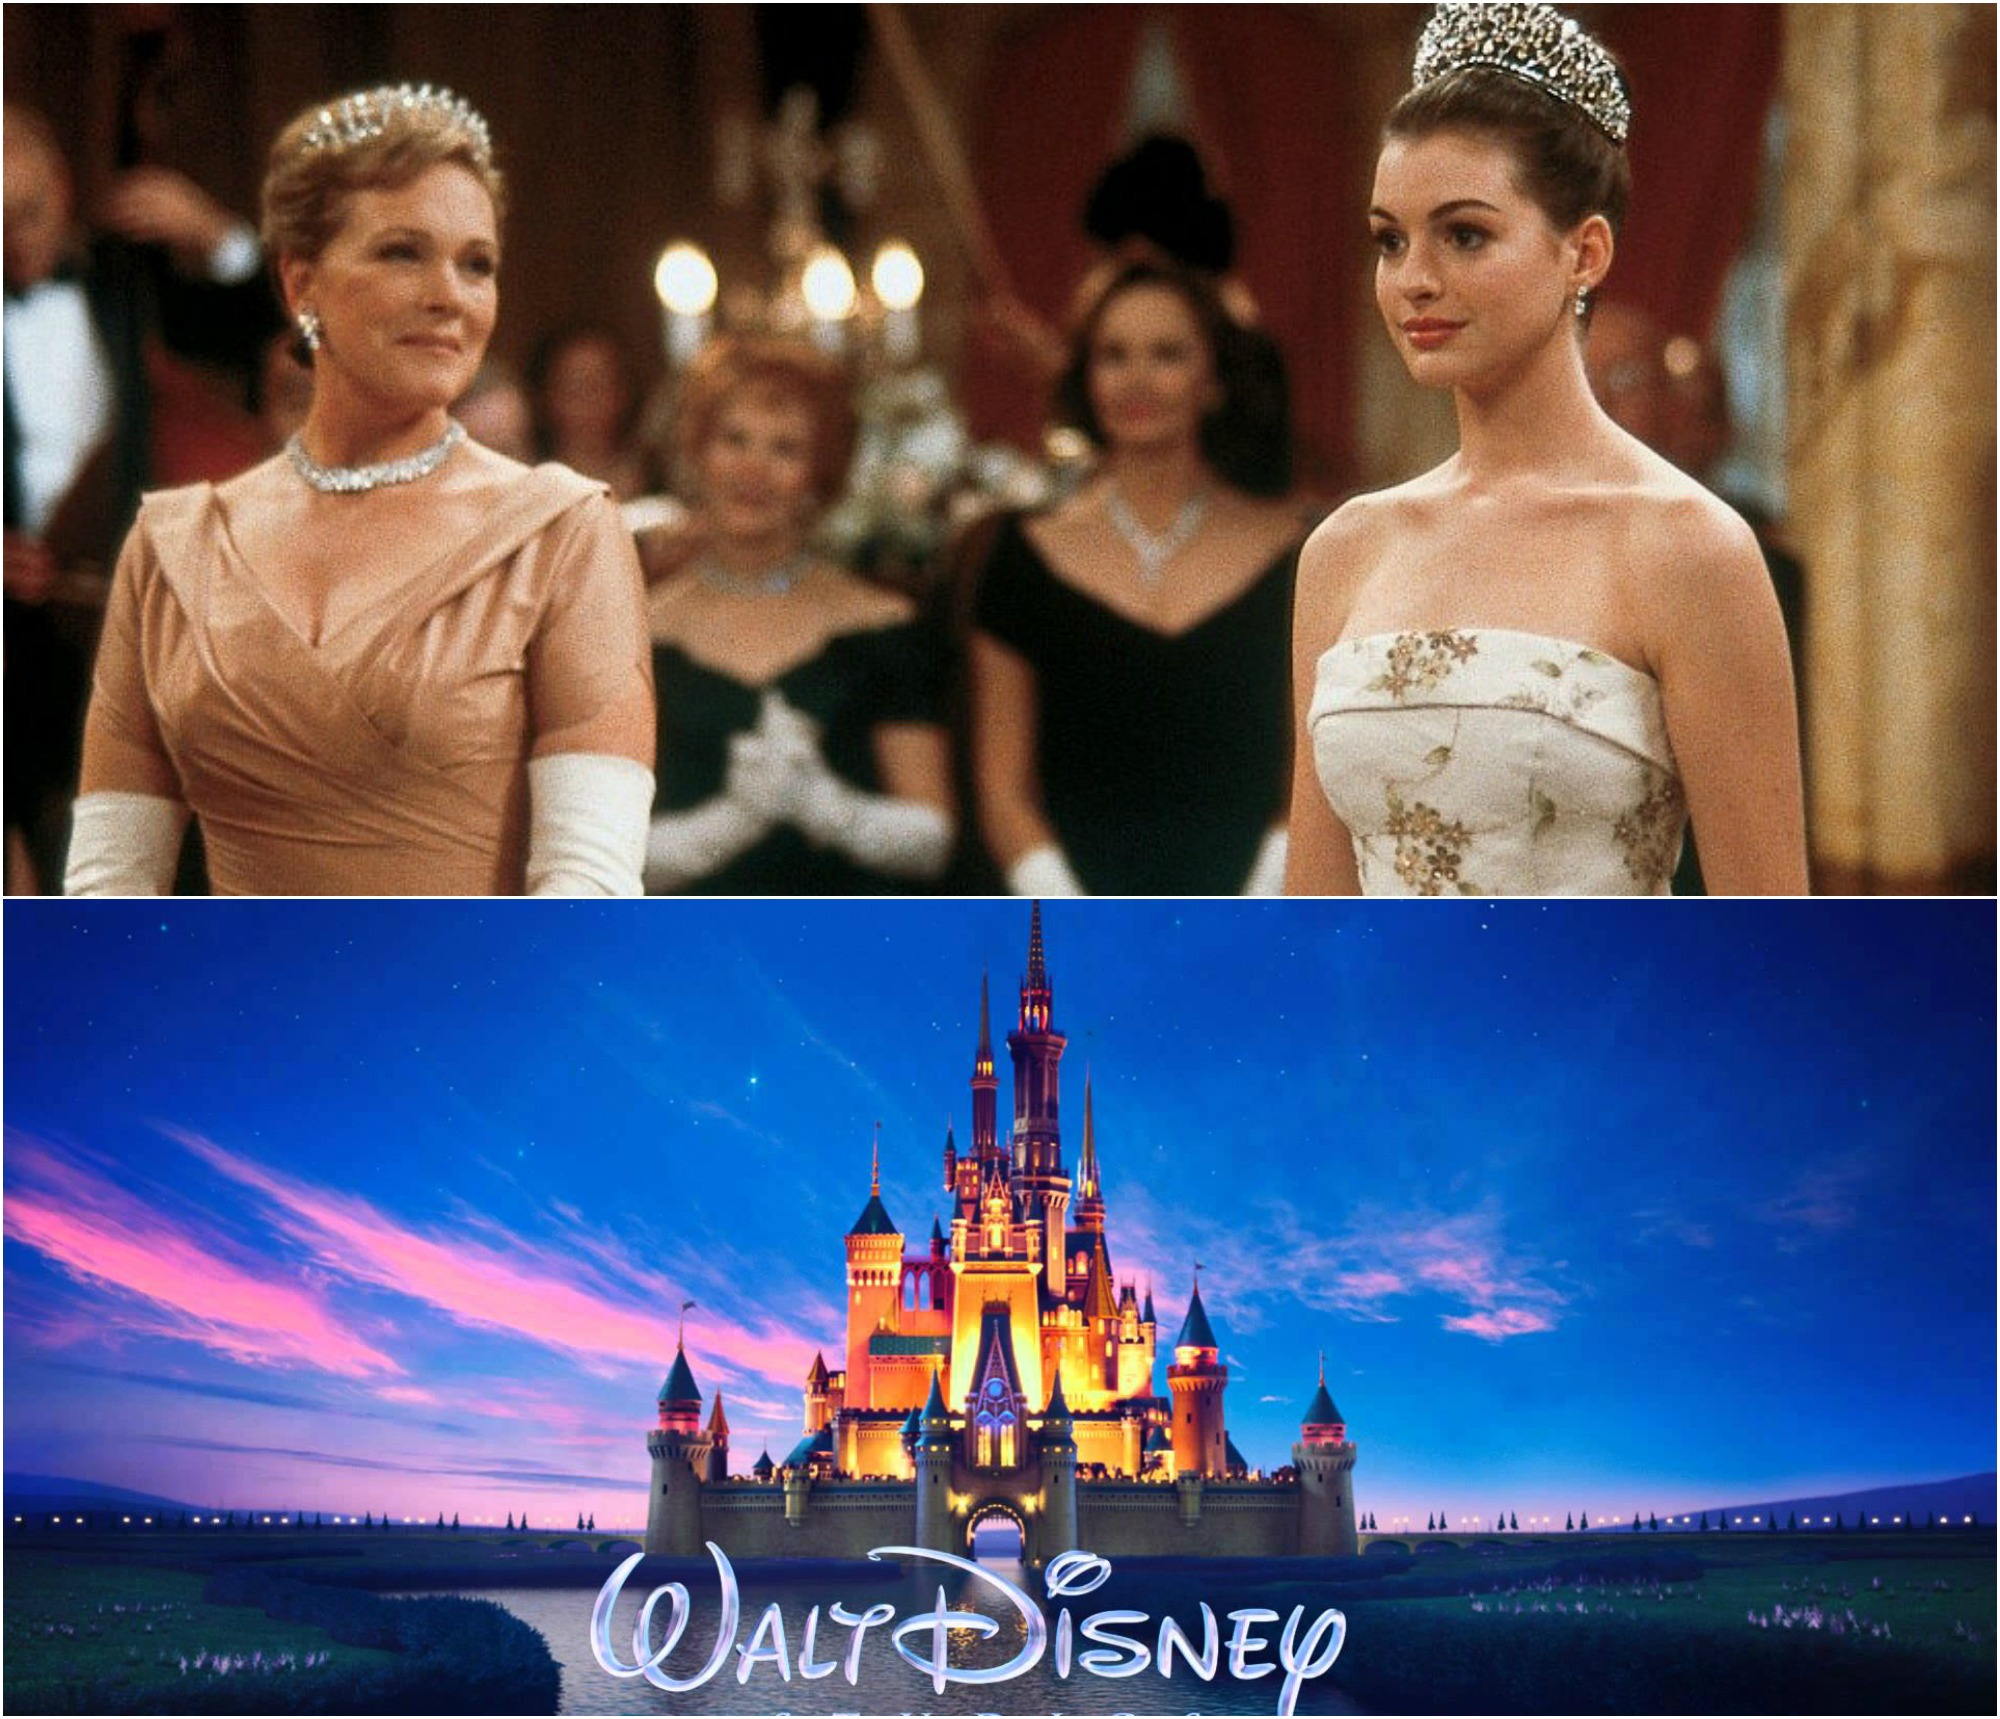 Disney Working On 3rd Film In Franchise Of Princess Diaries